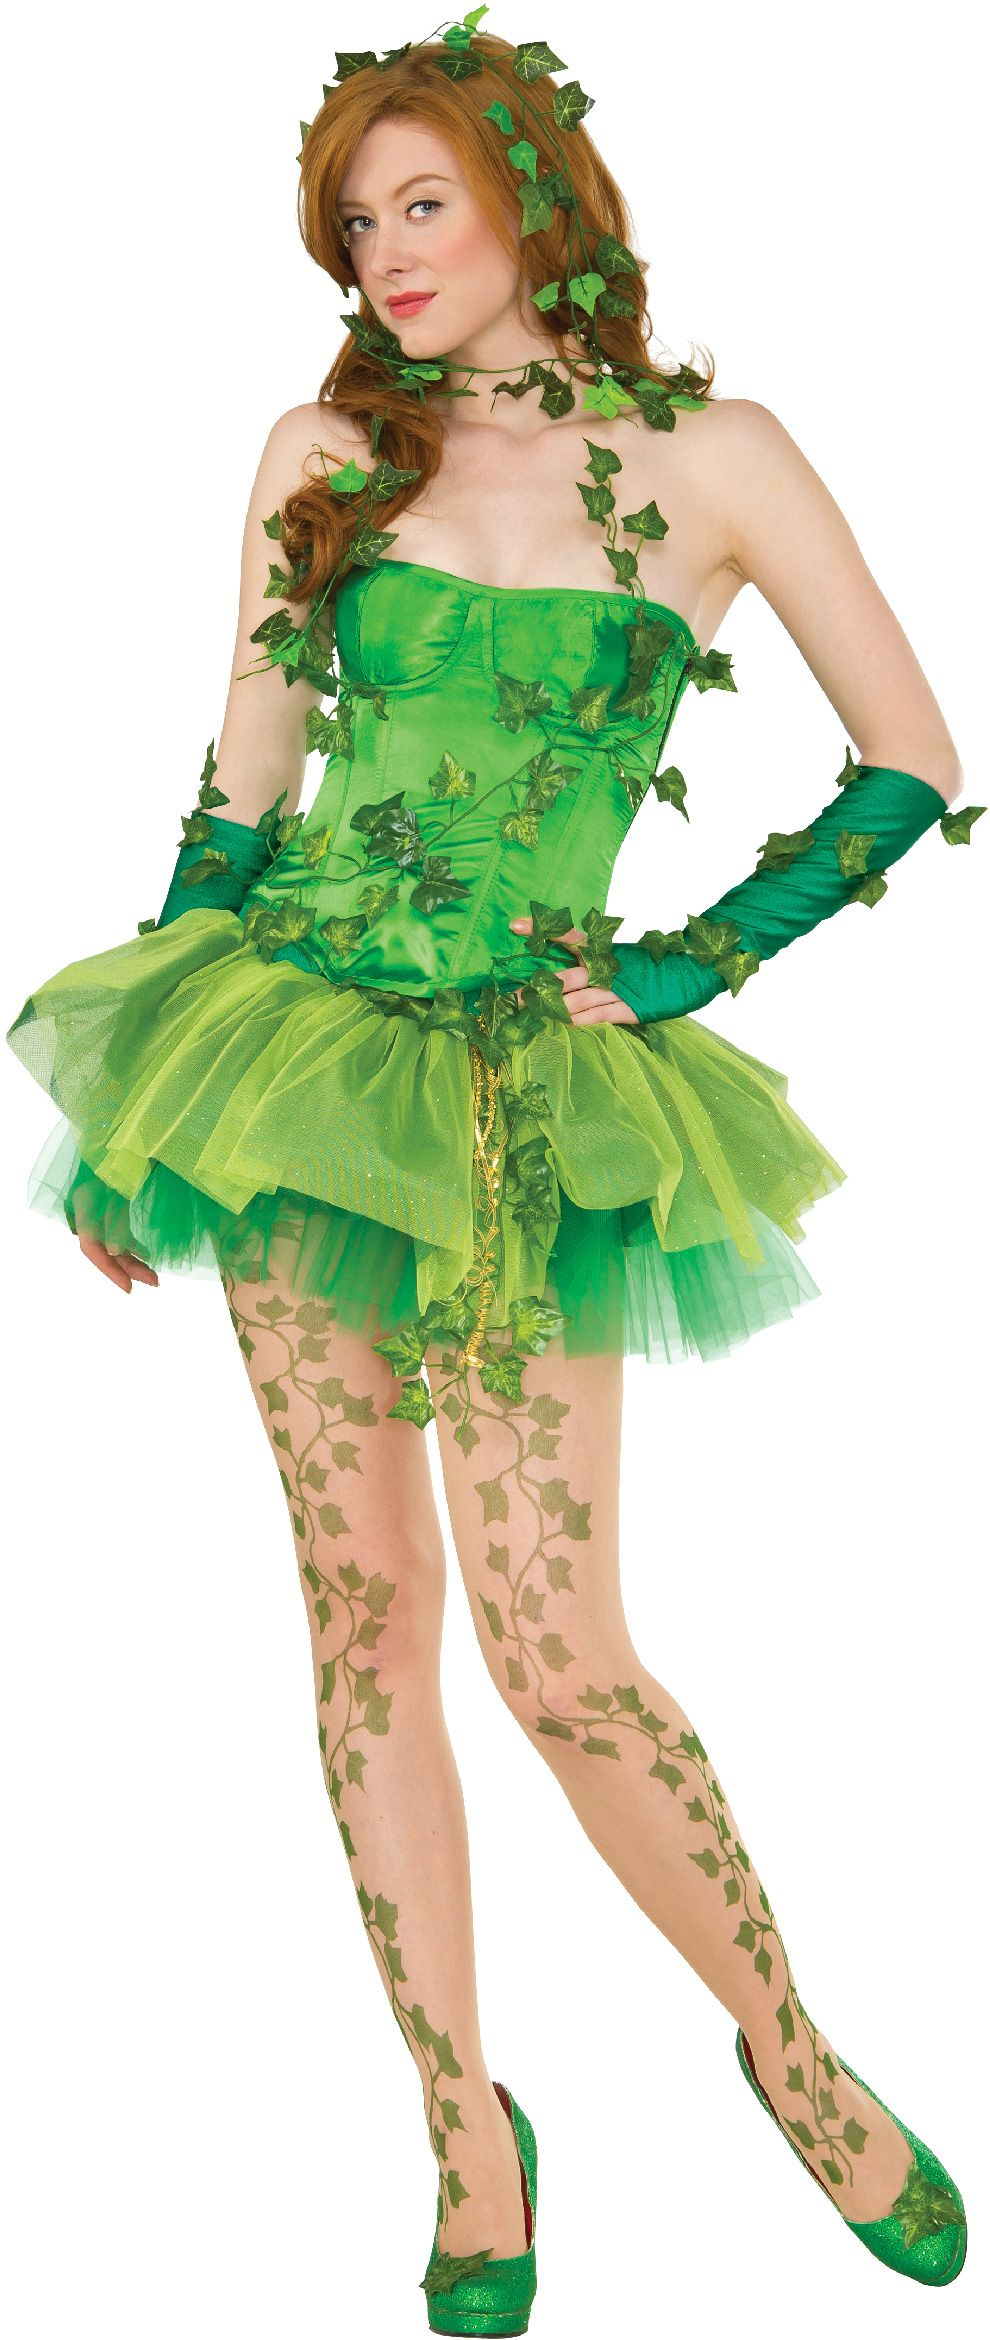 Create Your Own Look - Female Poison Ivy #2